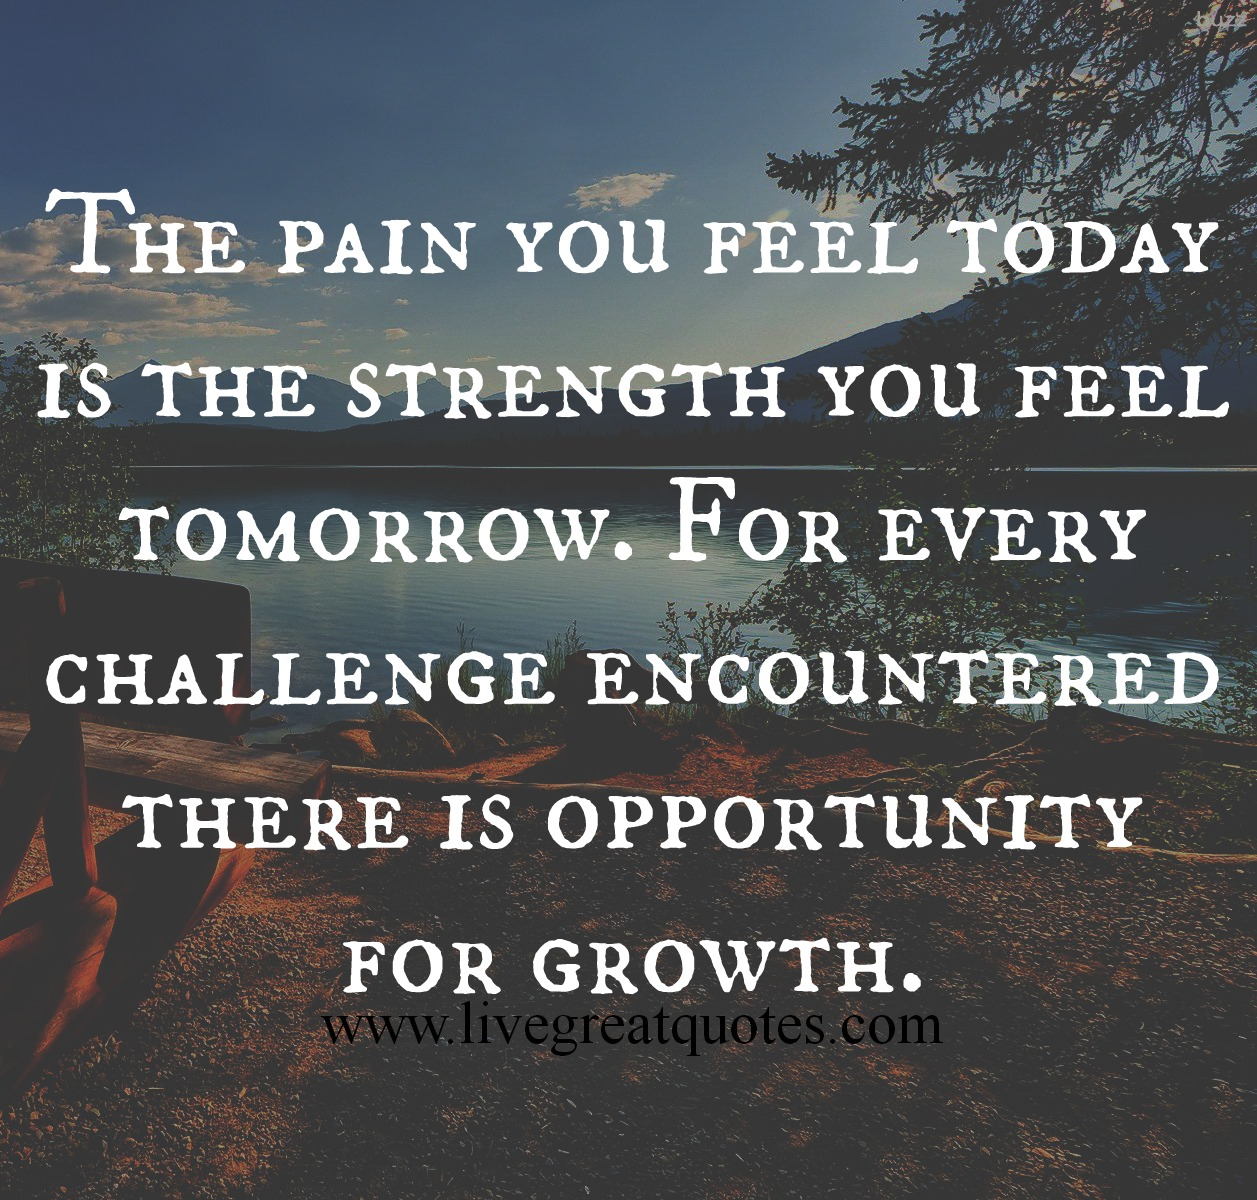 pain quotes and sayings - photo #15